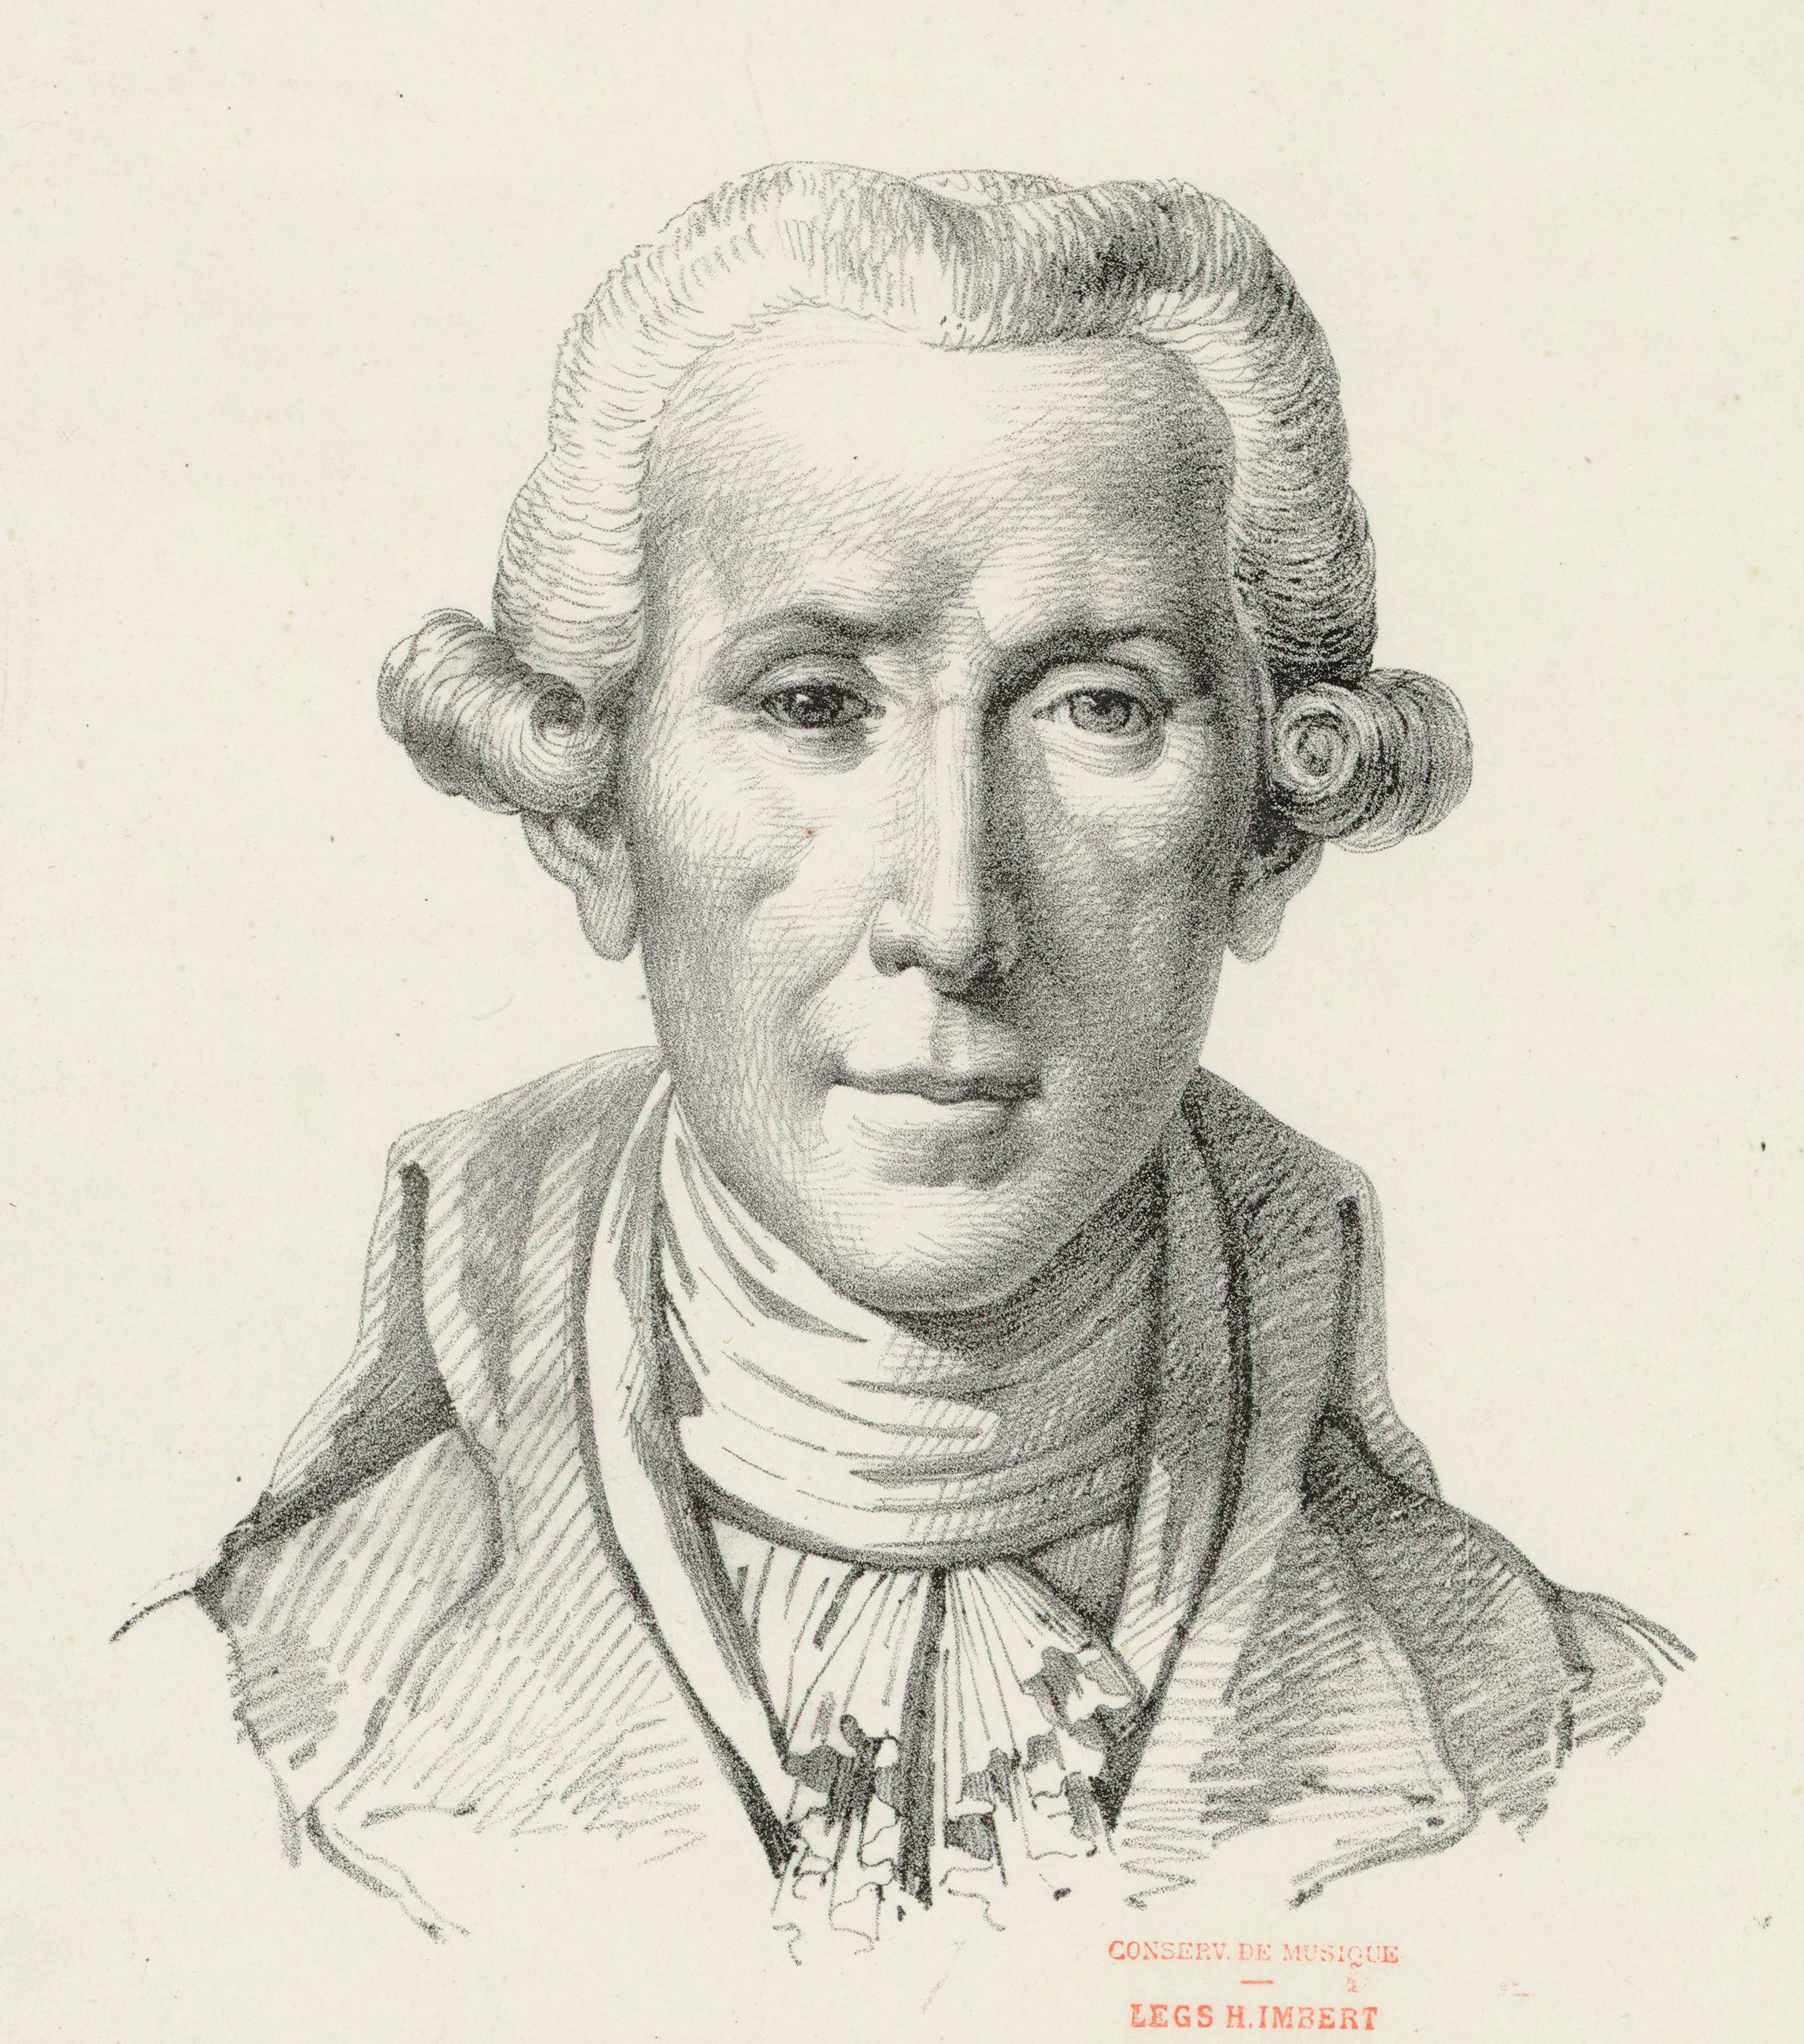 Pencil drawing of Luigi Boccherini by Etienne Mazas after a portrait bust